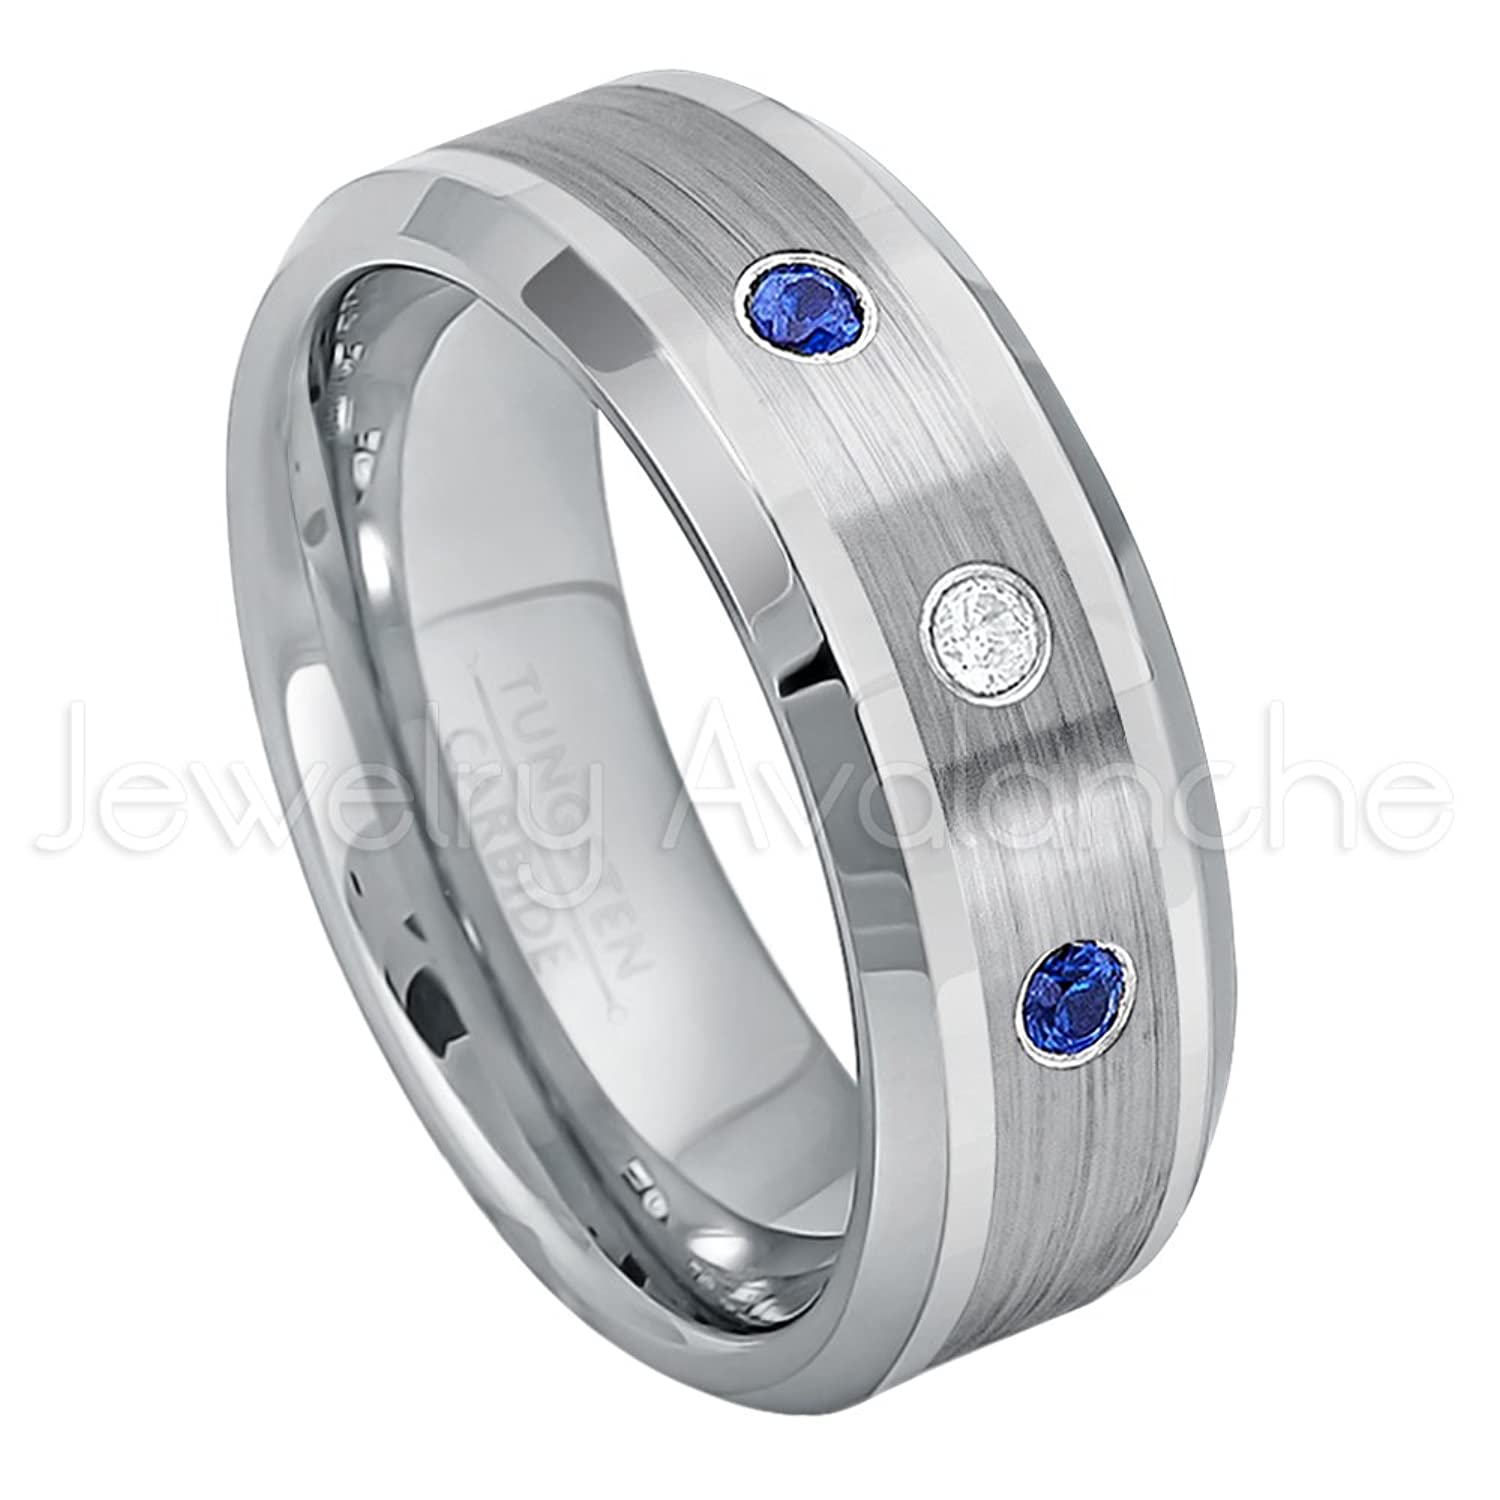 0.21ctw Diamond & Blue Sapphire 3-Stone Tungsten Ring - 8mm Comfort Fit Tungsten Carbide Wedding Ring